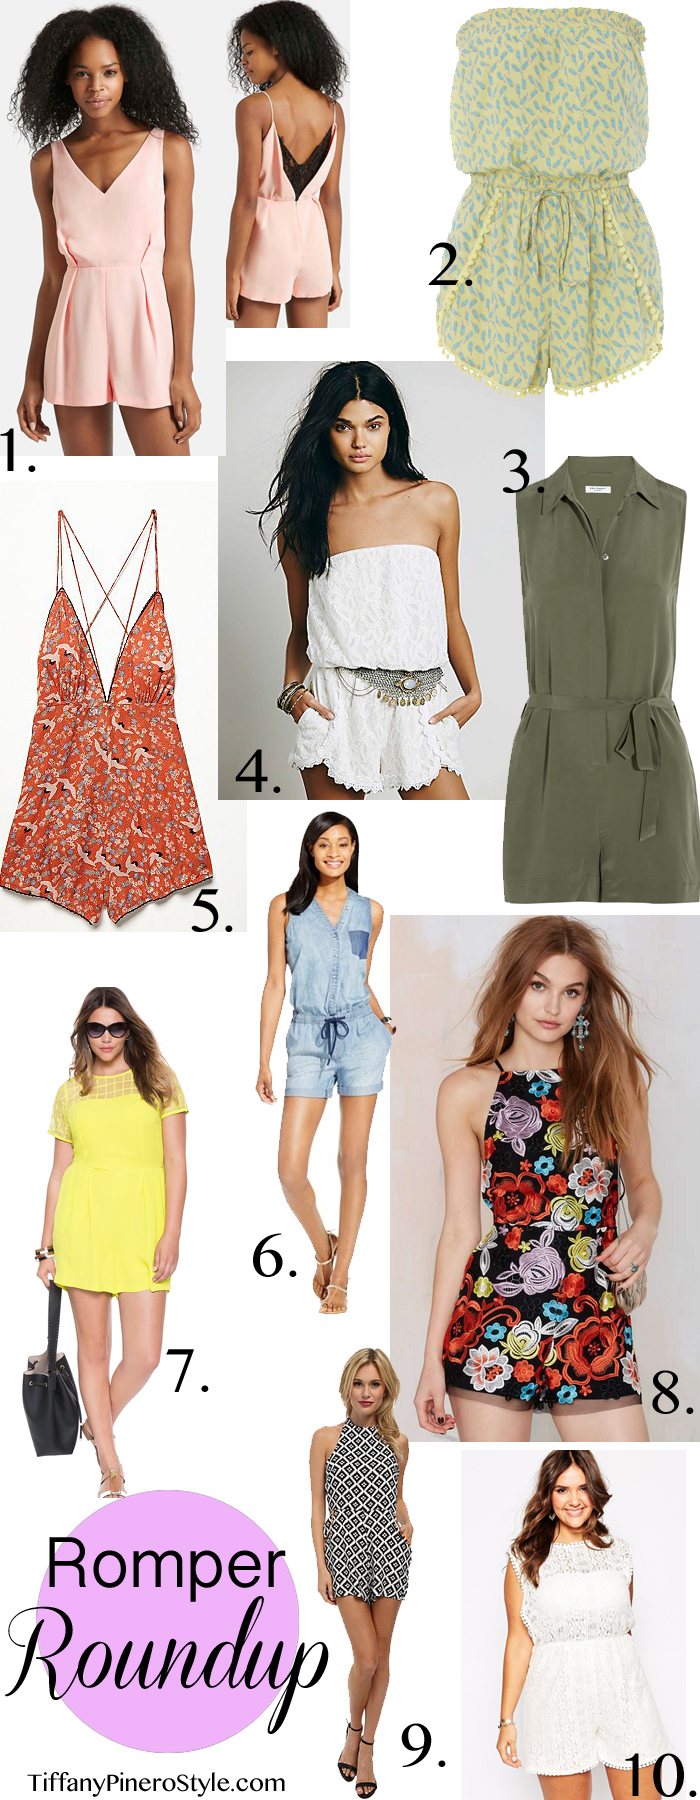 Romper Roundup The Best Styles For Summer Fashion_edited-1